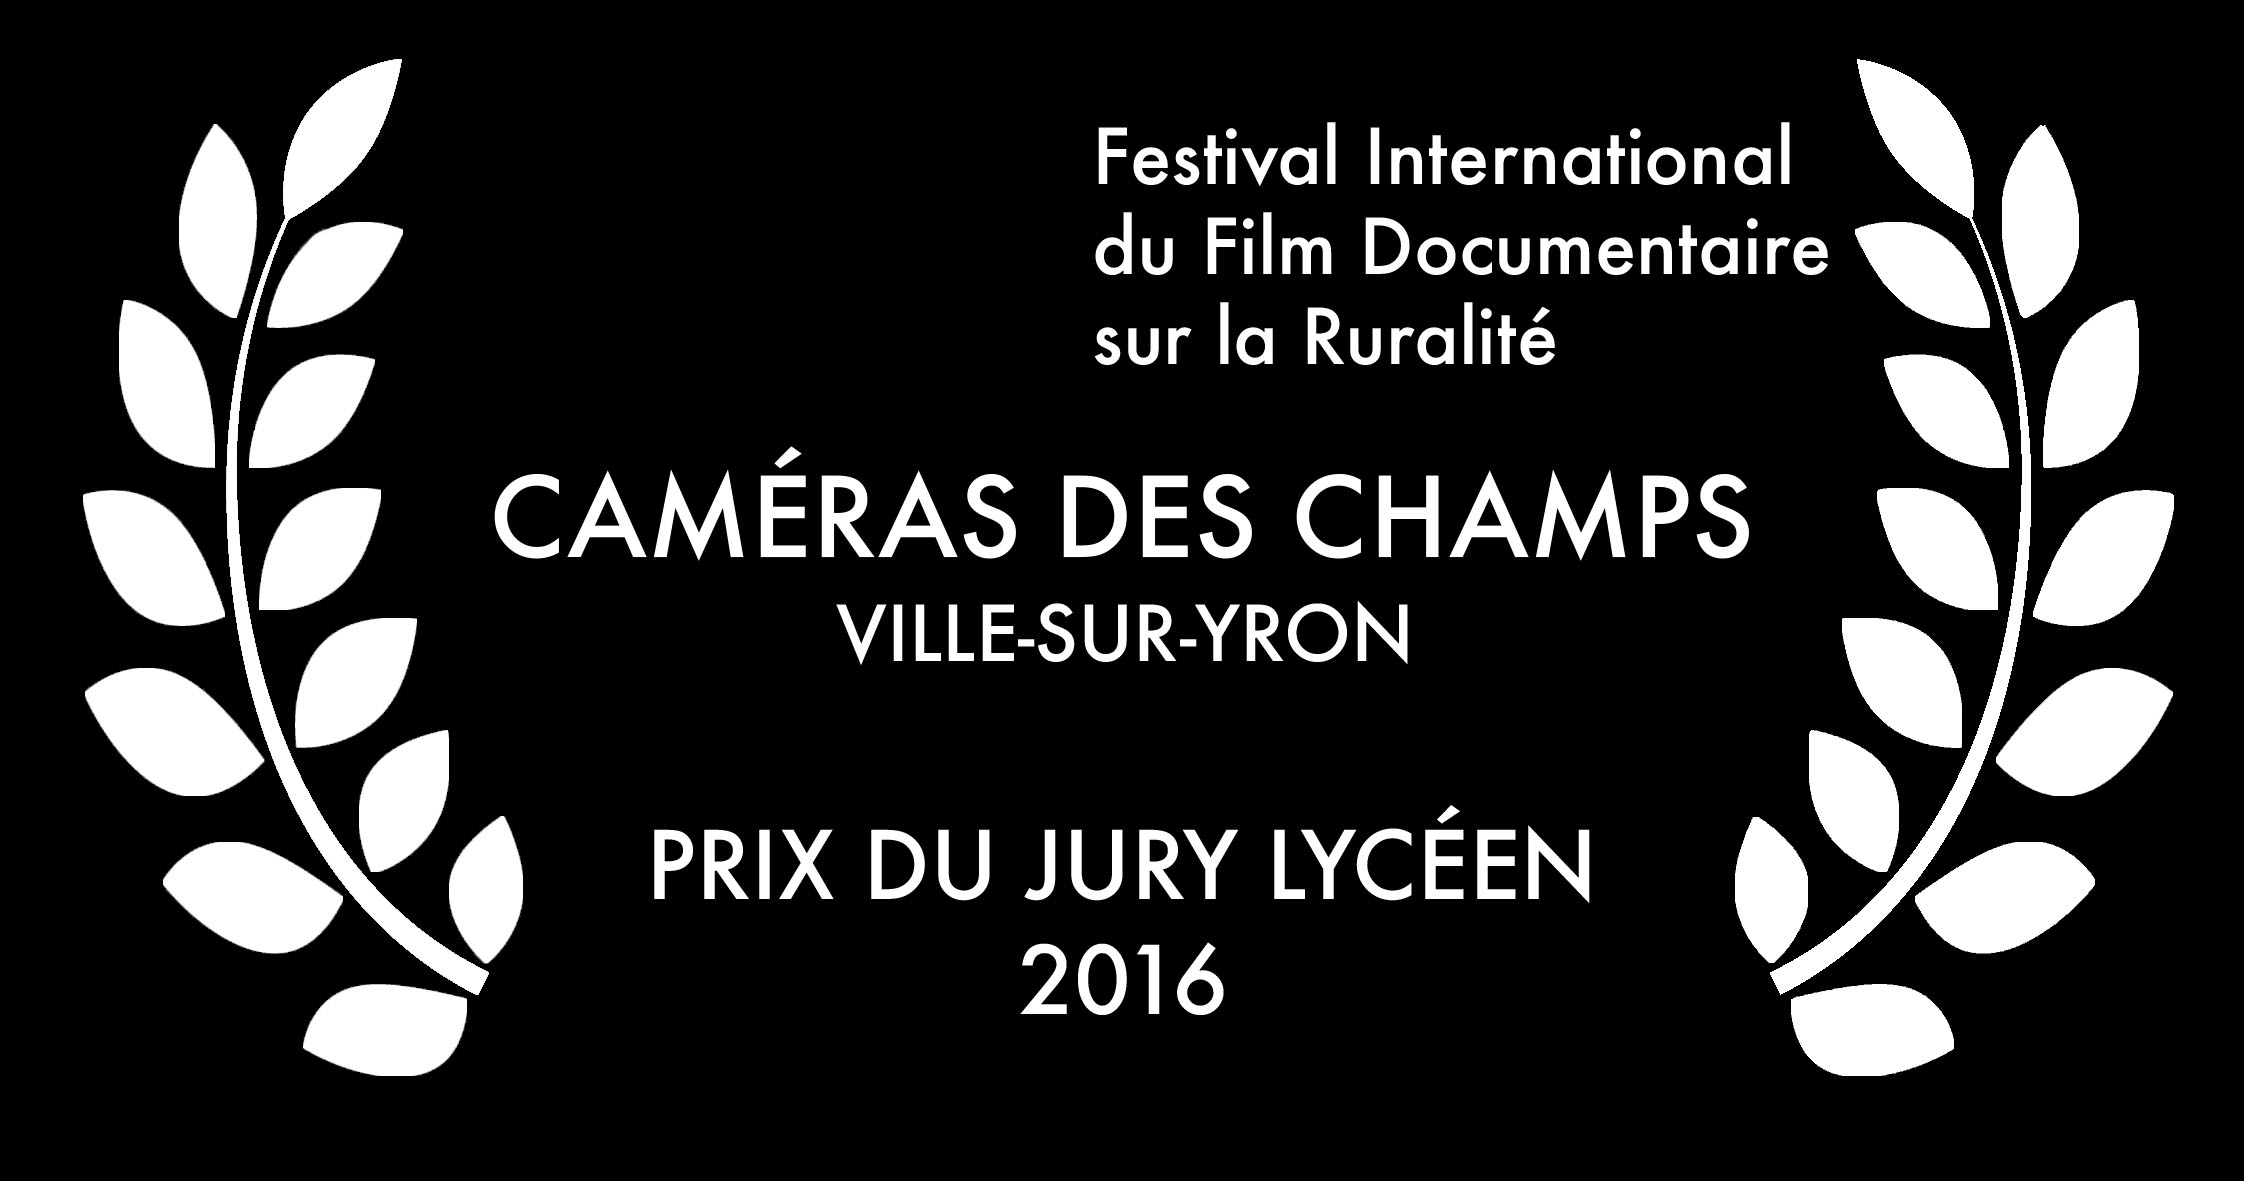 Festival International du Film Documentaire sur la Ruralité 2016 - Prix du jury lycéen